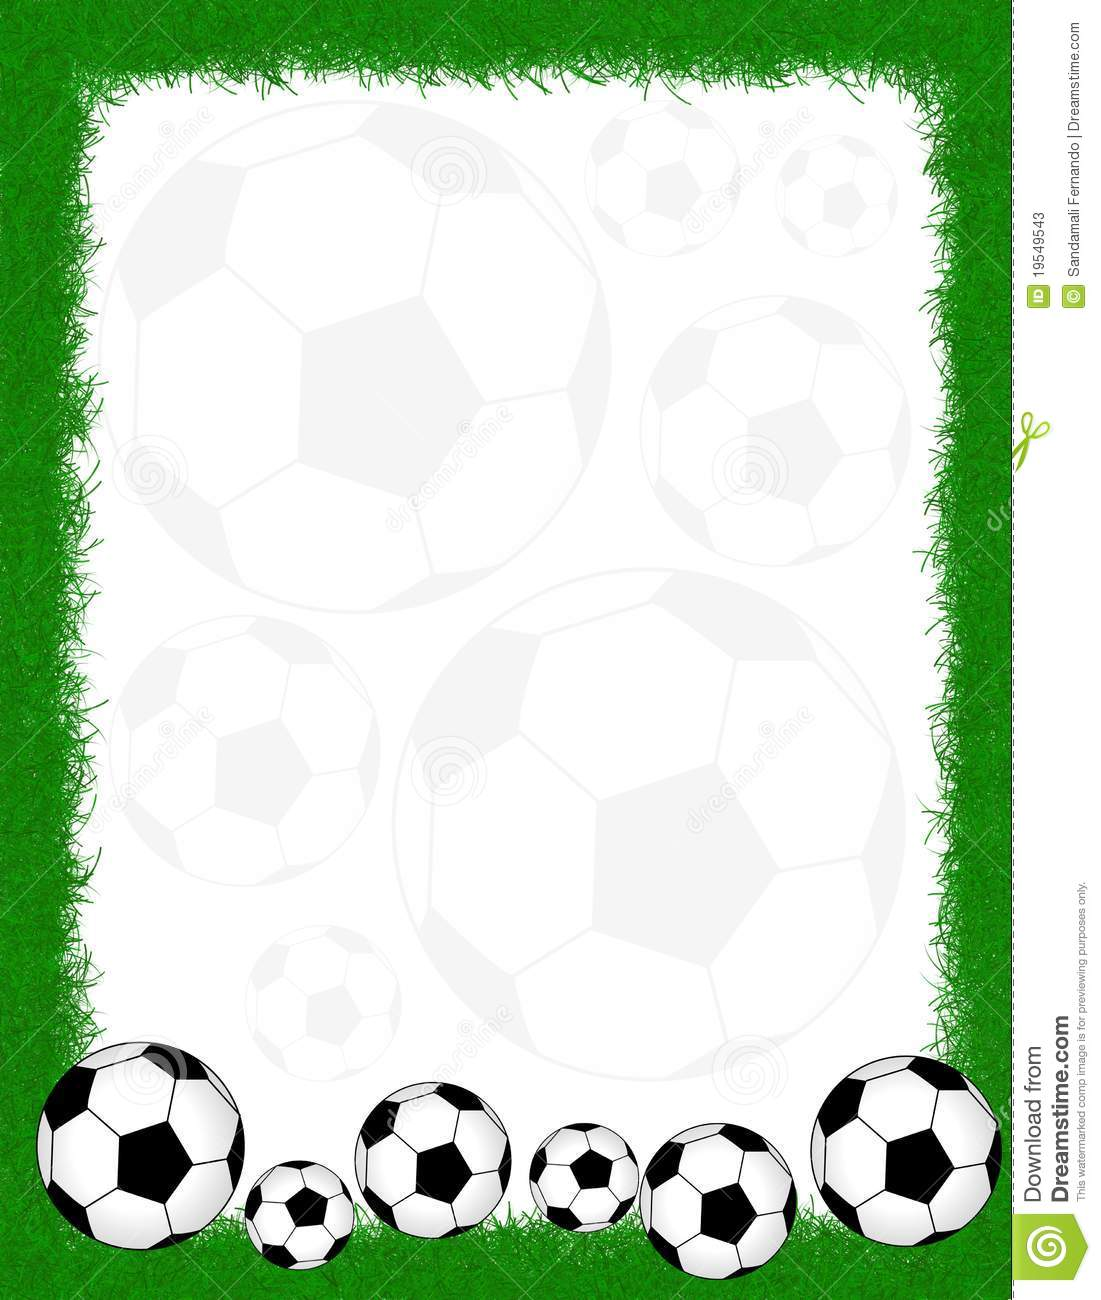 soccer frame    border stock photos